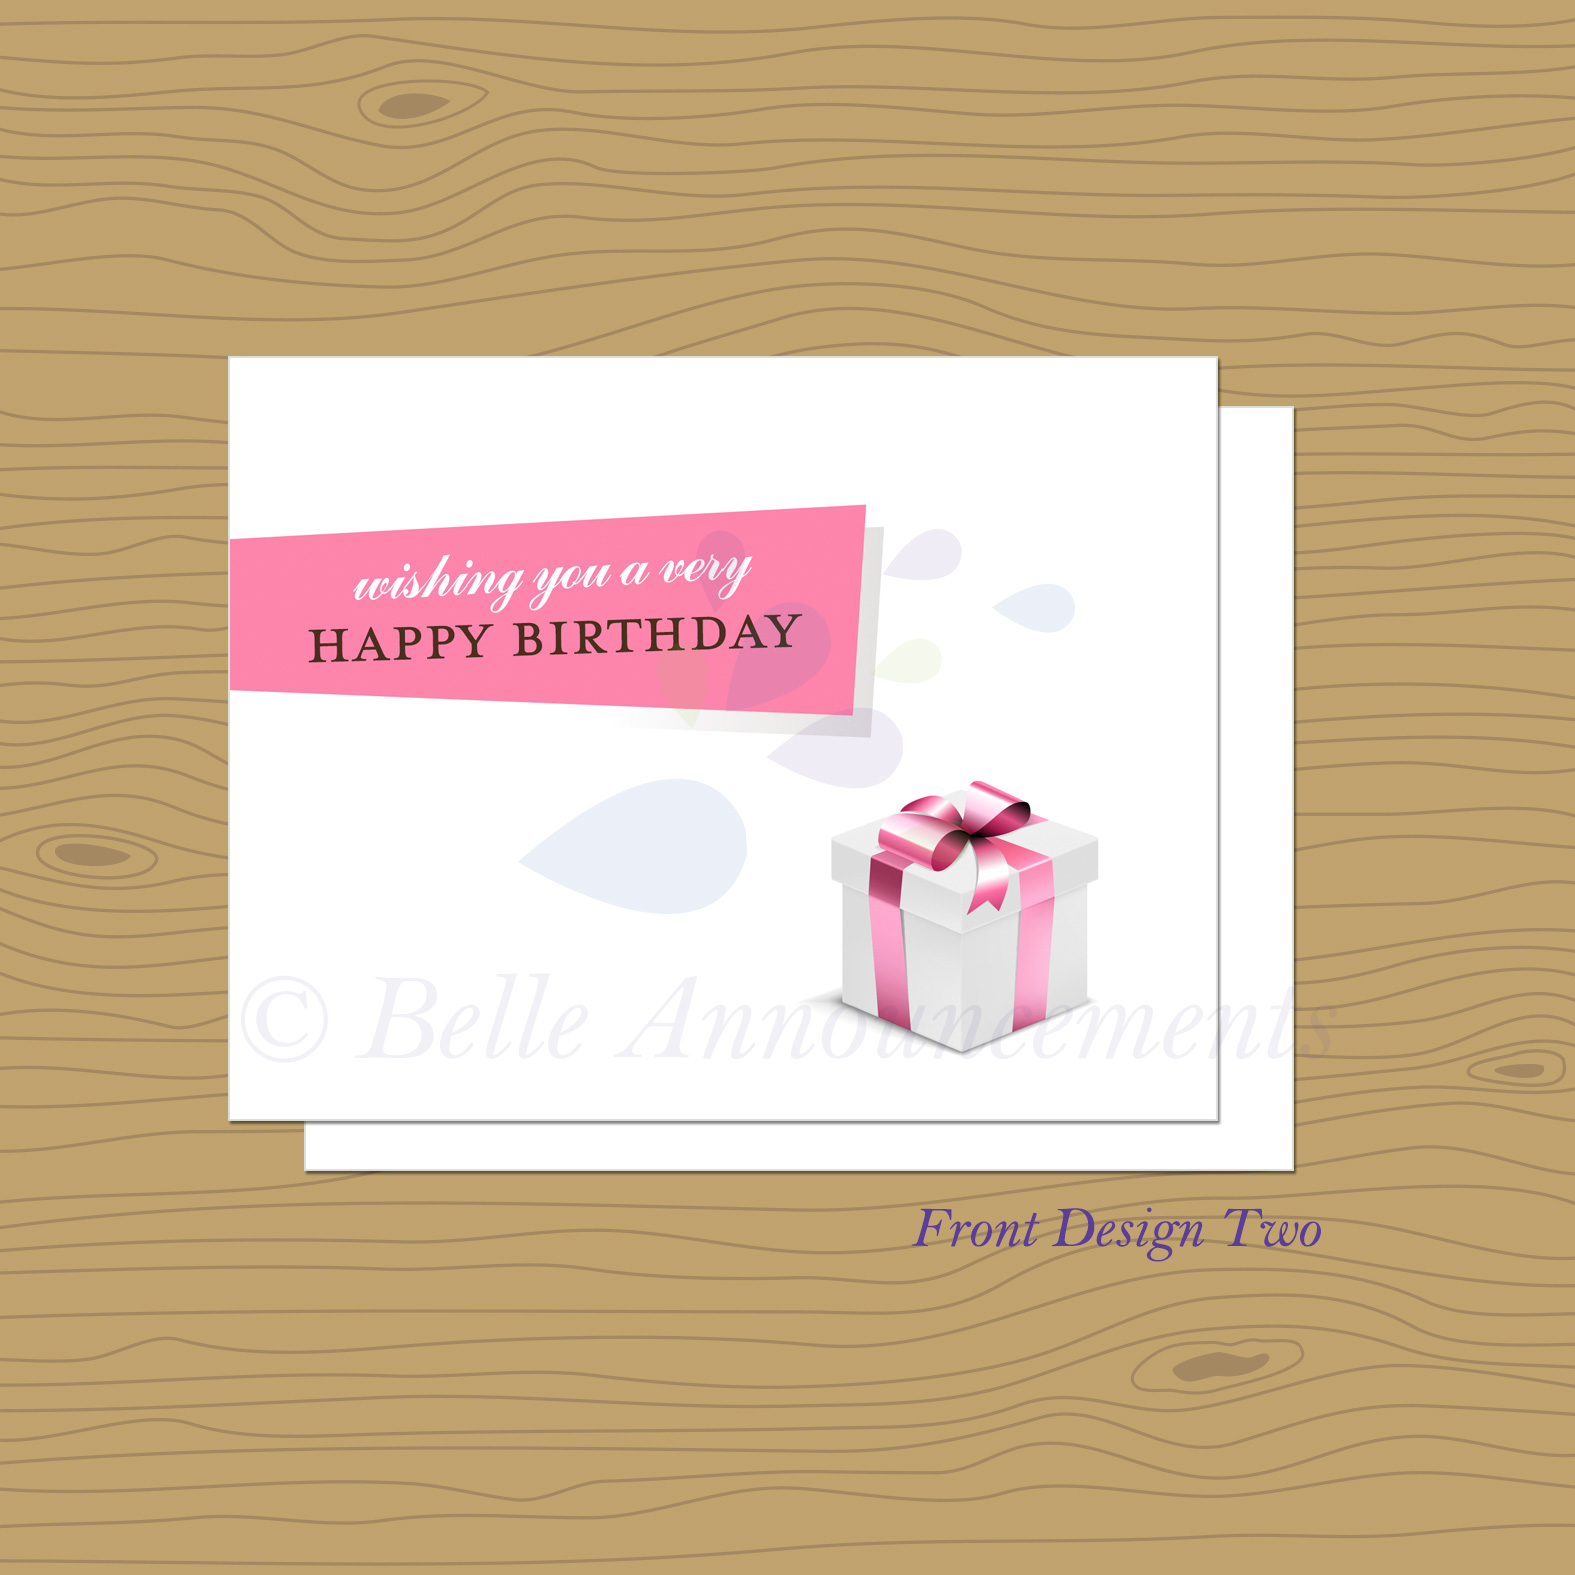 Belle Announces Mary Kay Promotional Birthday Cards – How to Address a Birthday Card